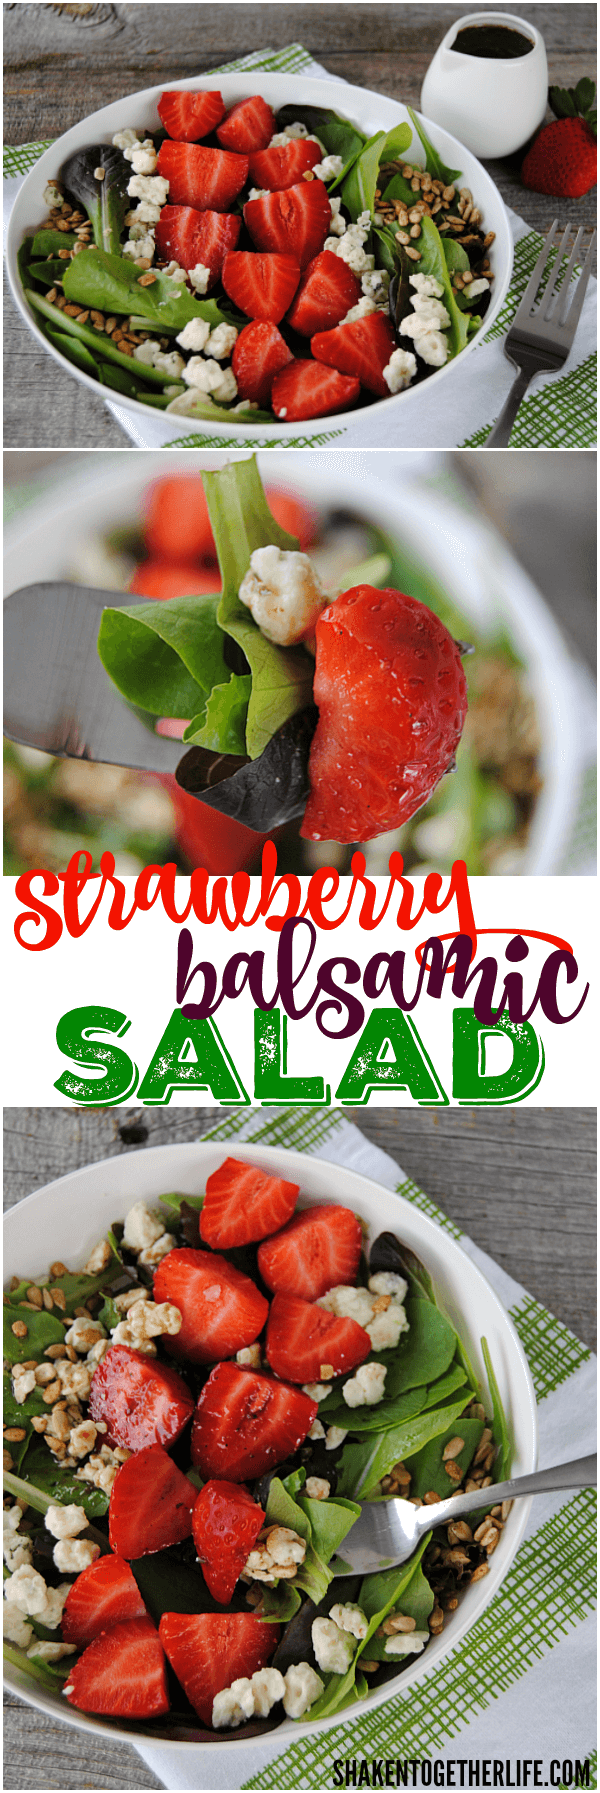 Our Simple Strawberry Balsamic Salad pairs crisp greens, ripe strawberries, tangy Gorgonzola cheese and crunchy seeds with a light Balsamic dressing. It's pretty much the perfect salad!